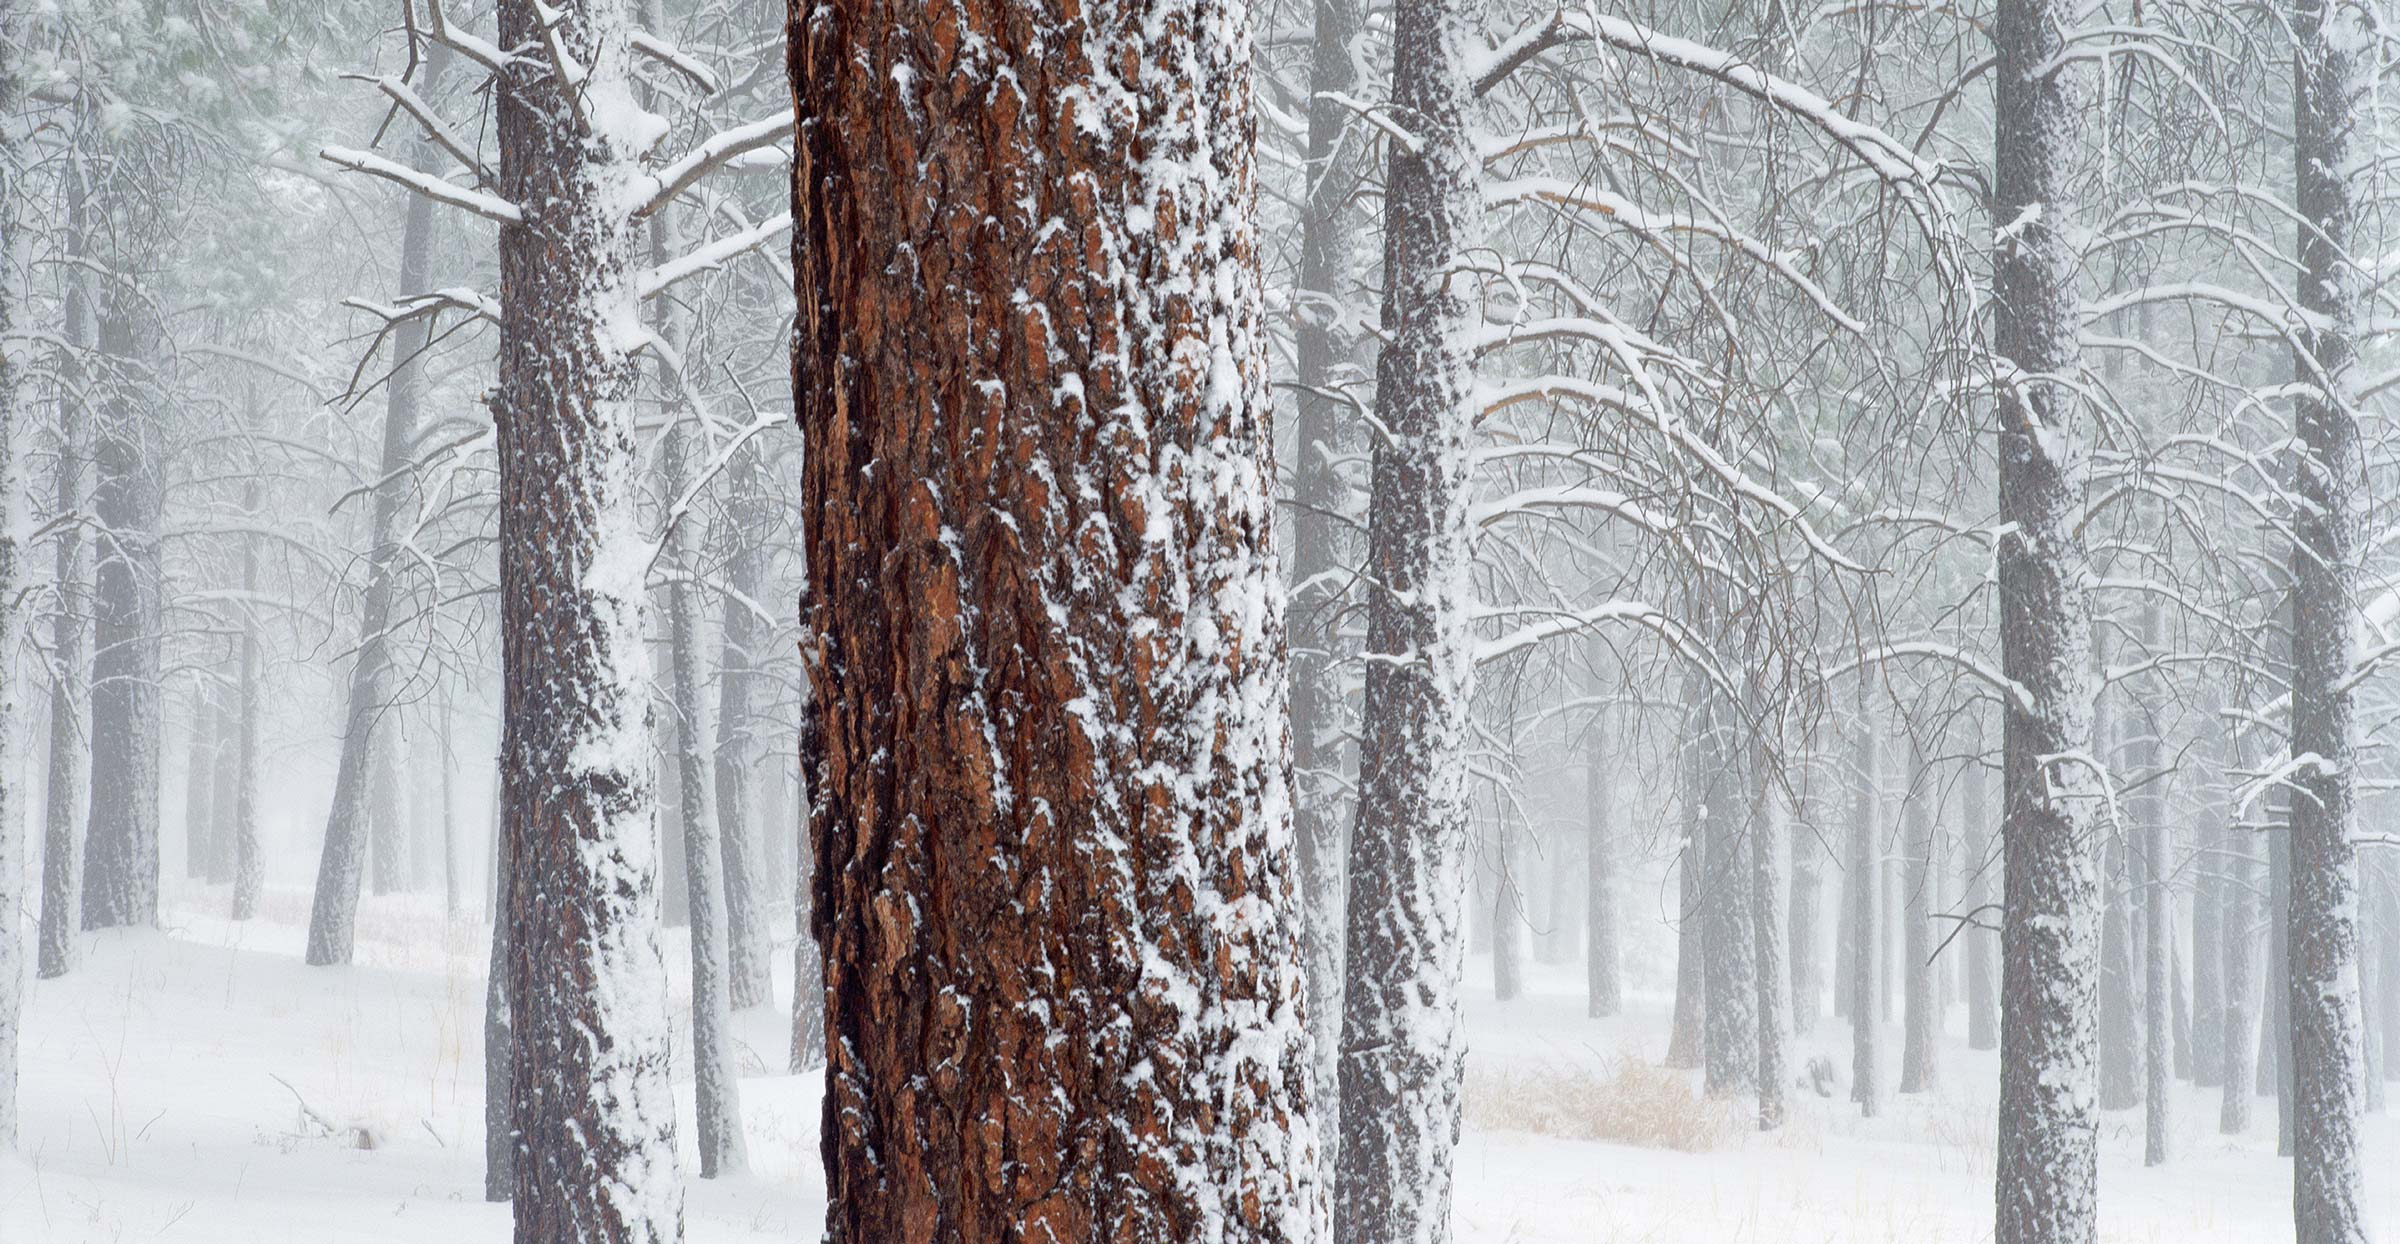 706 Ponderosa Pines in Snow, Flagstaff, Arizona